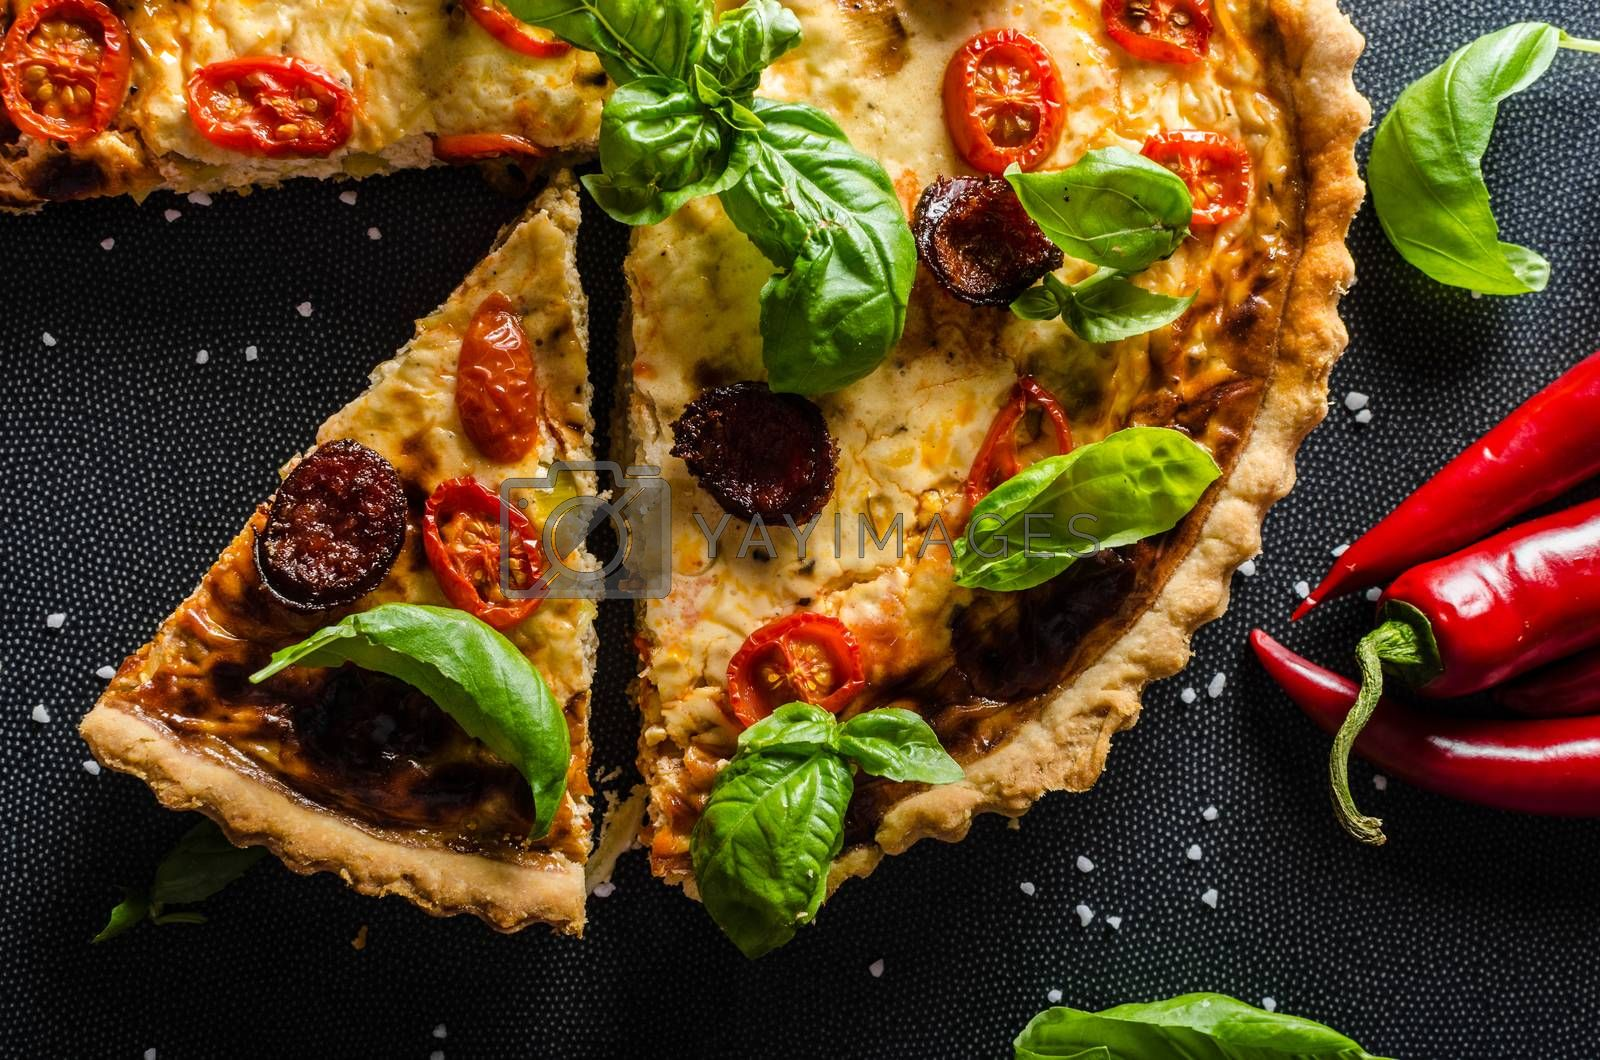 Homemade quiche with chili peppers, cheese and chorizo